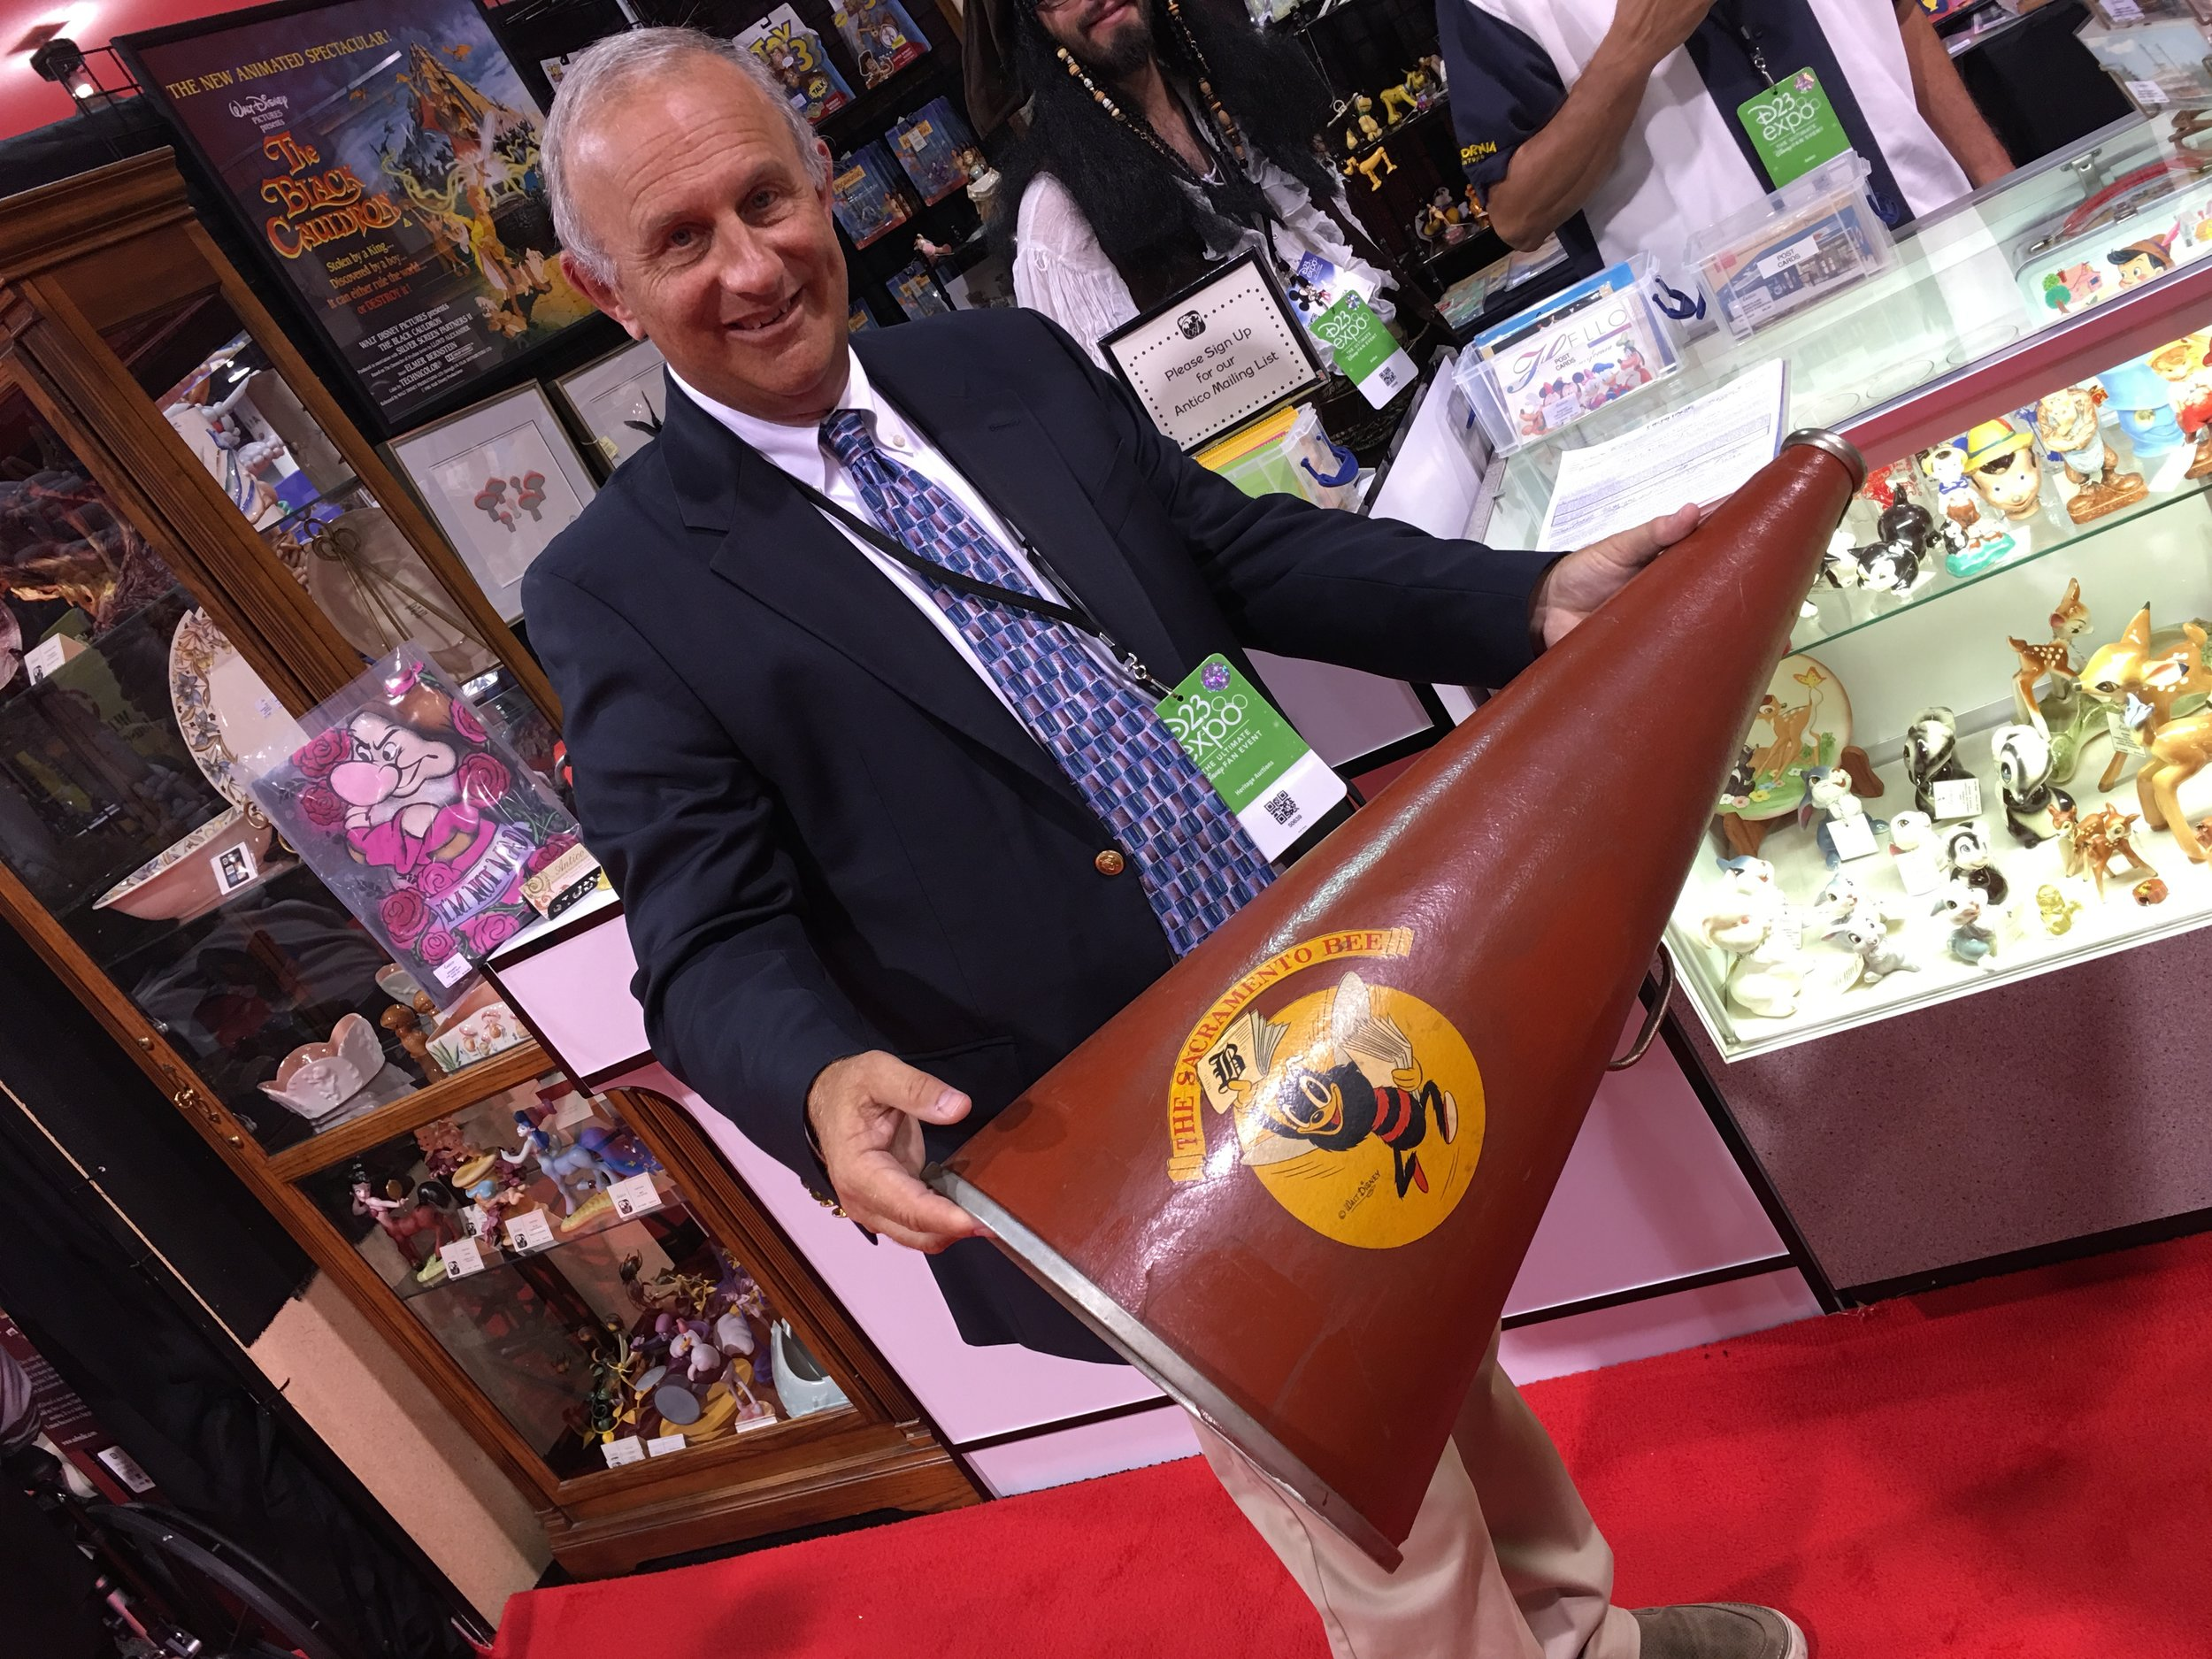 """Antico's extremely unique  Sacramento Bee Megaphone with Logo Designed by Hank Porter (Walt Disney, c. 1940's) , was discovered by Jim Lentz, Director of Animation Art for Heritage Auctions, at D23 Expo 2017. """"It's the best piece in the whole show!"""""""